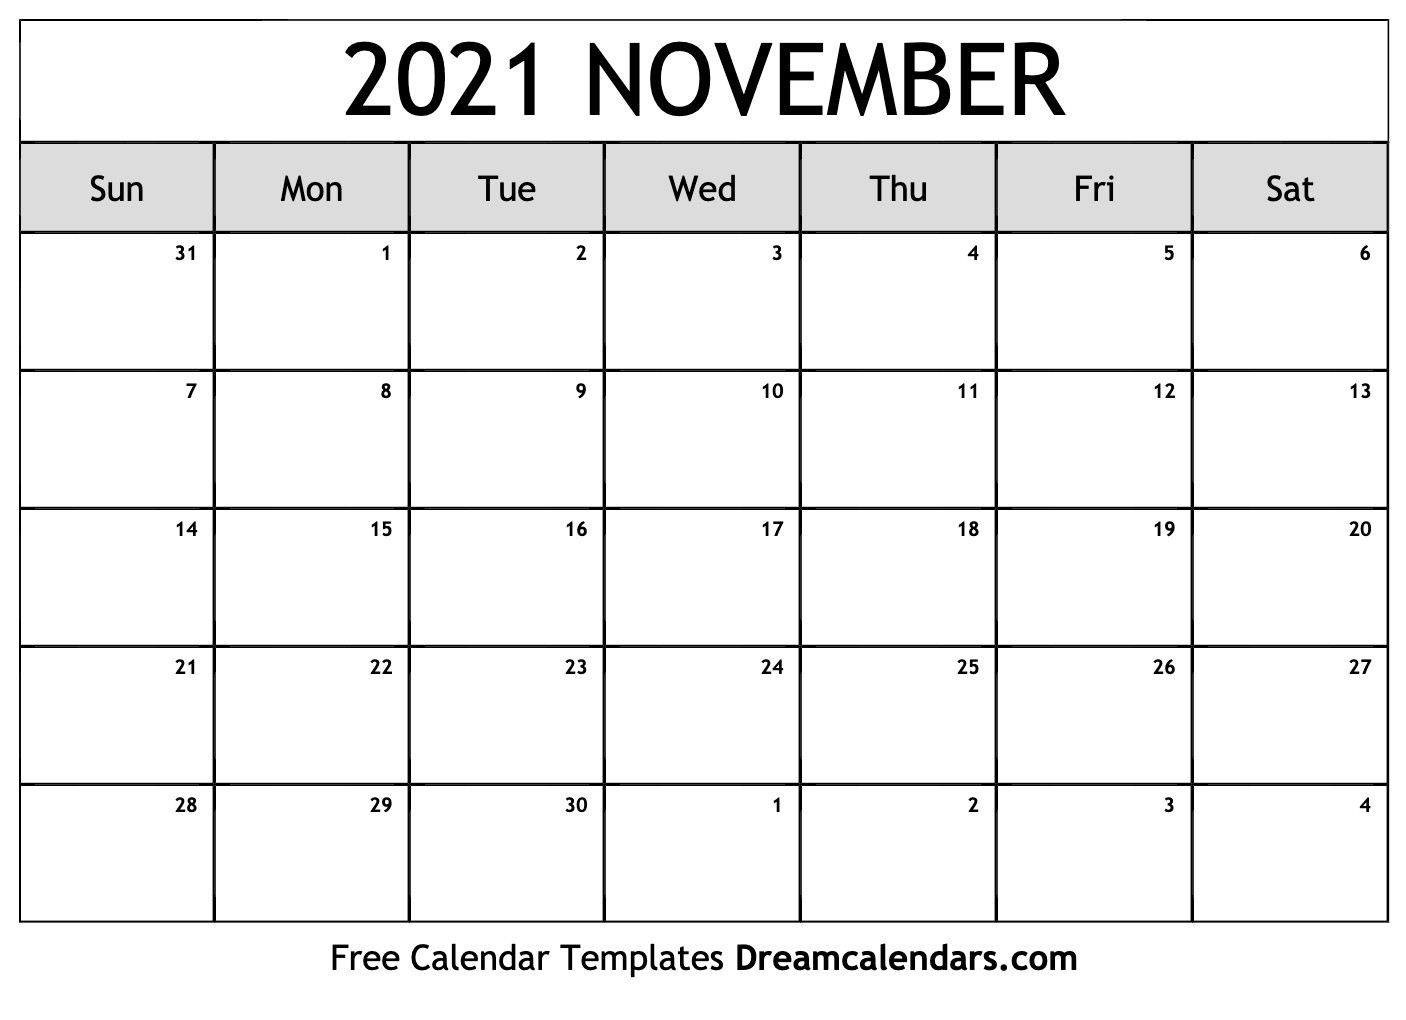 Printable November 2021 Calendar  2021 Free Printable Calendars Without Downloading November